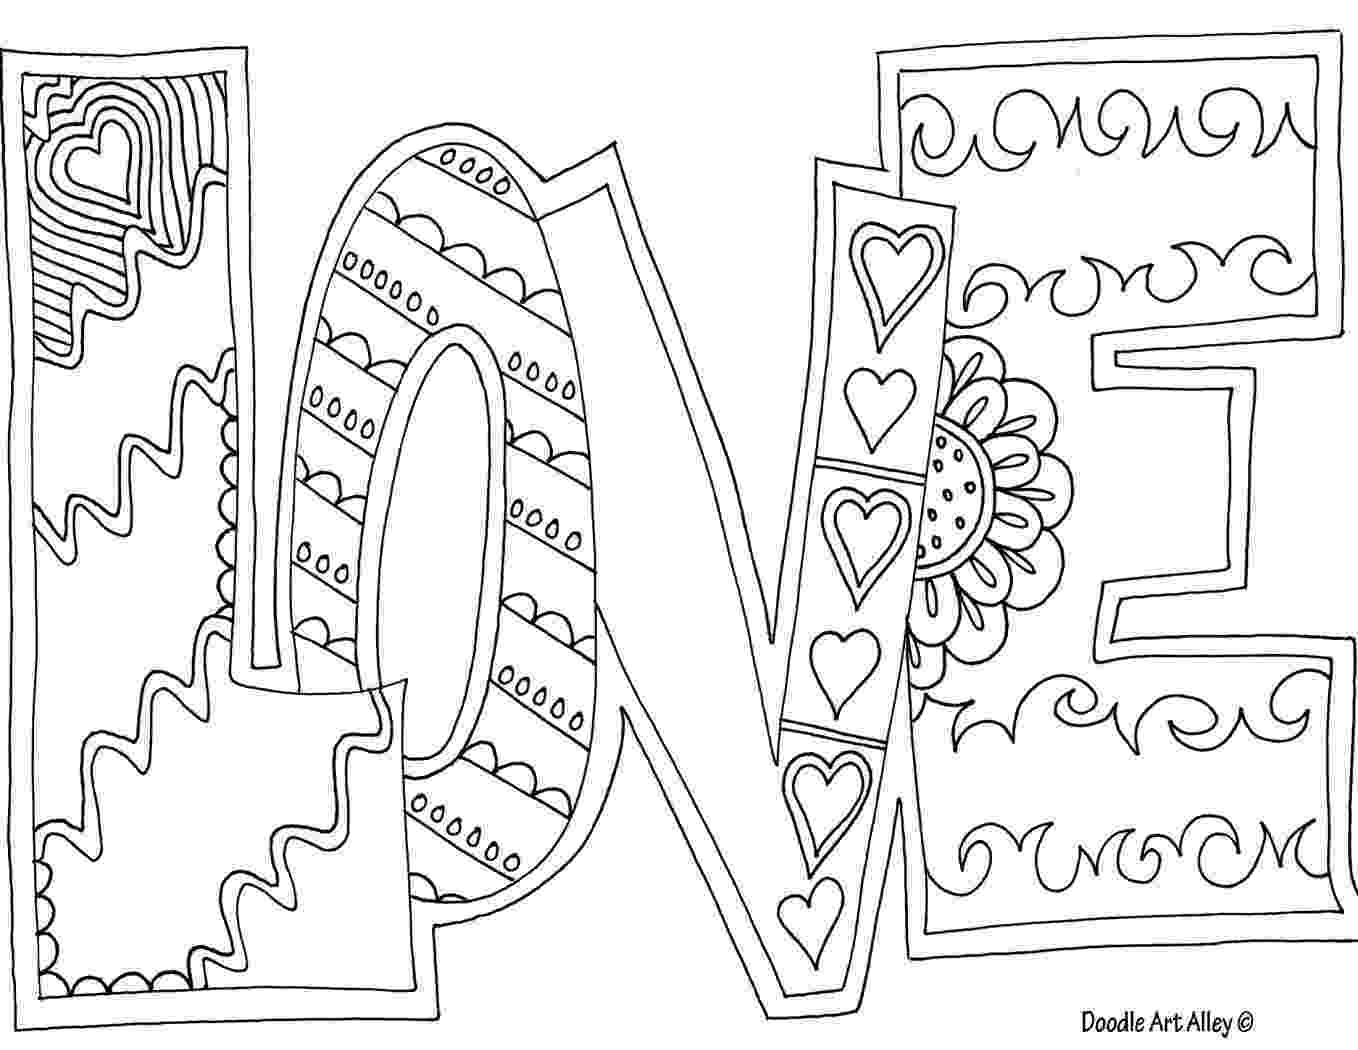 love coloring sheet quoti love you quot coloring pages coloring sheet love